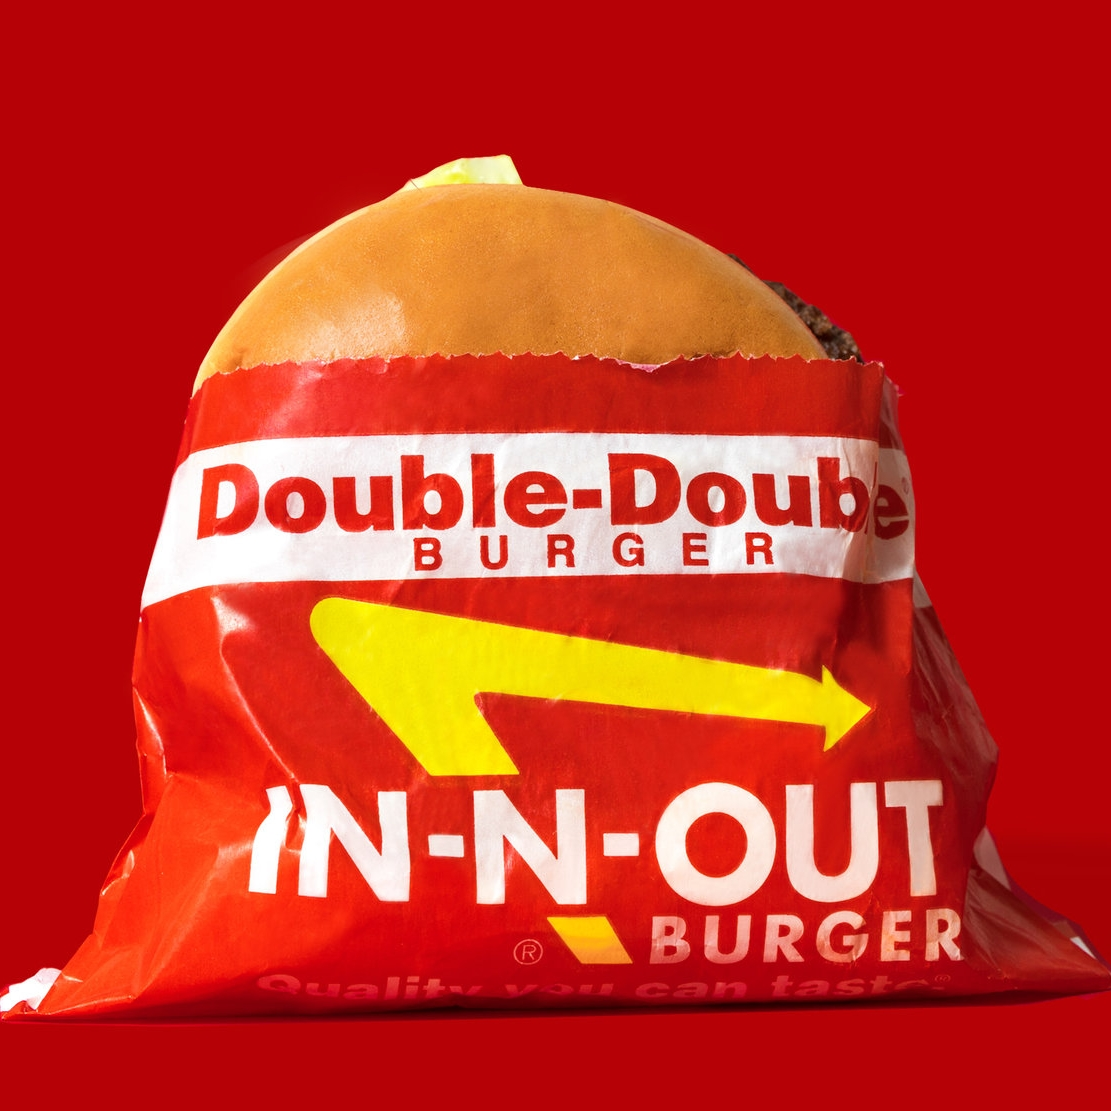 IN - N - OUT : THE GANG